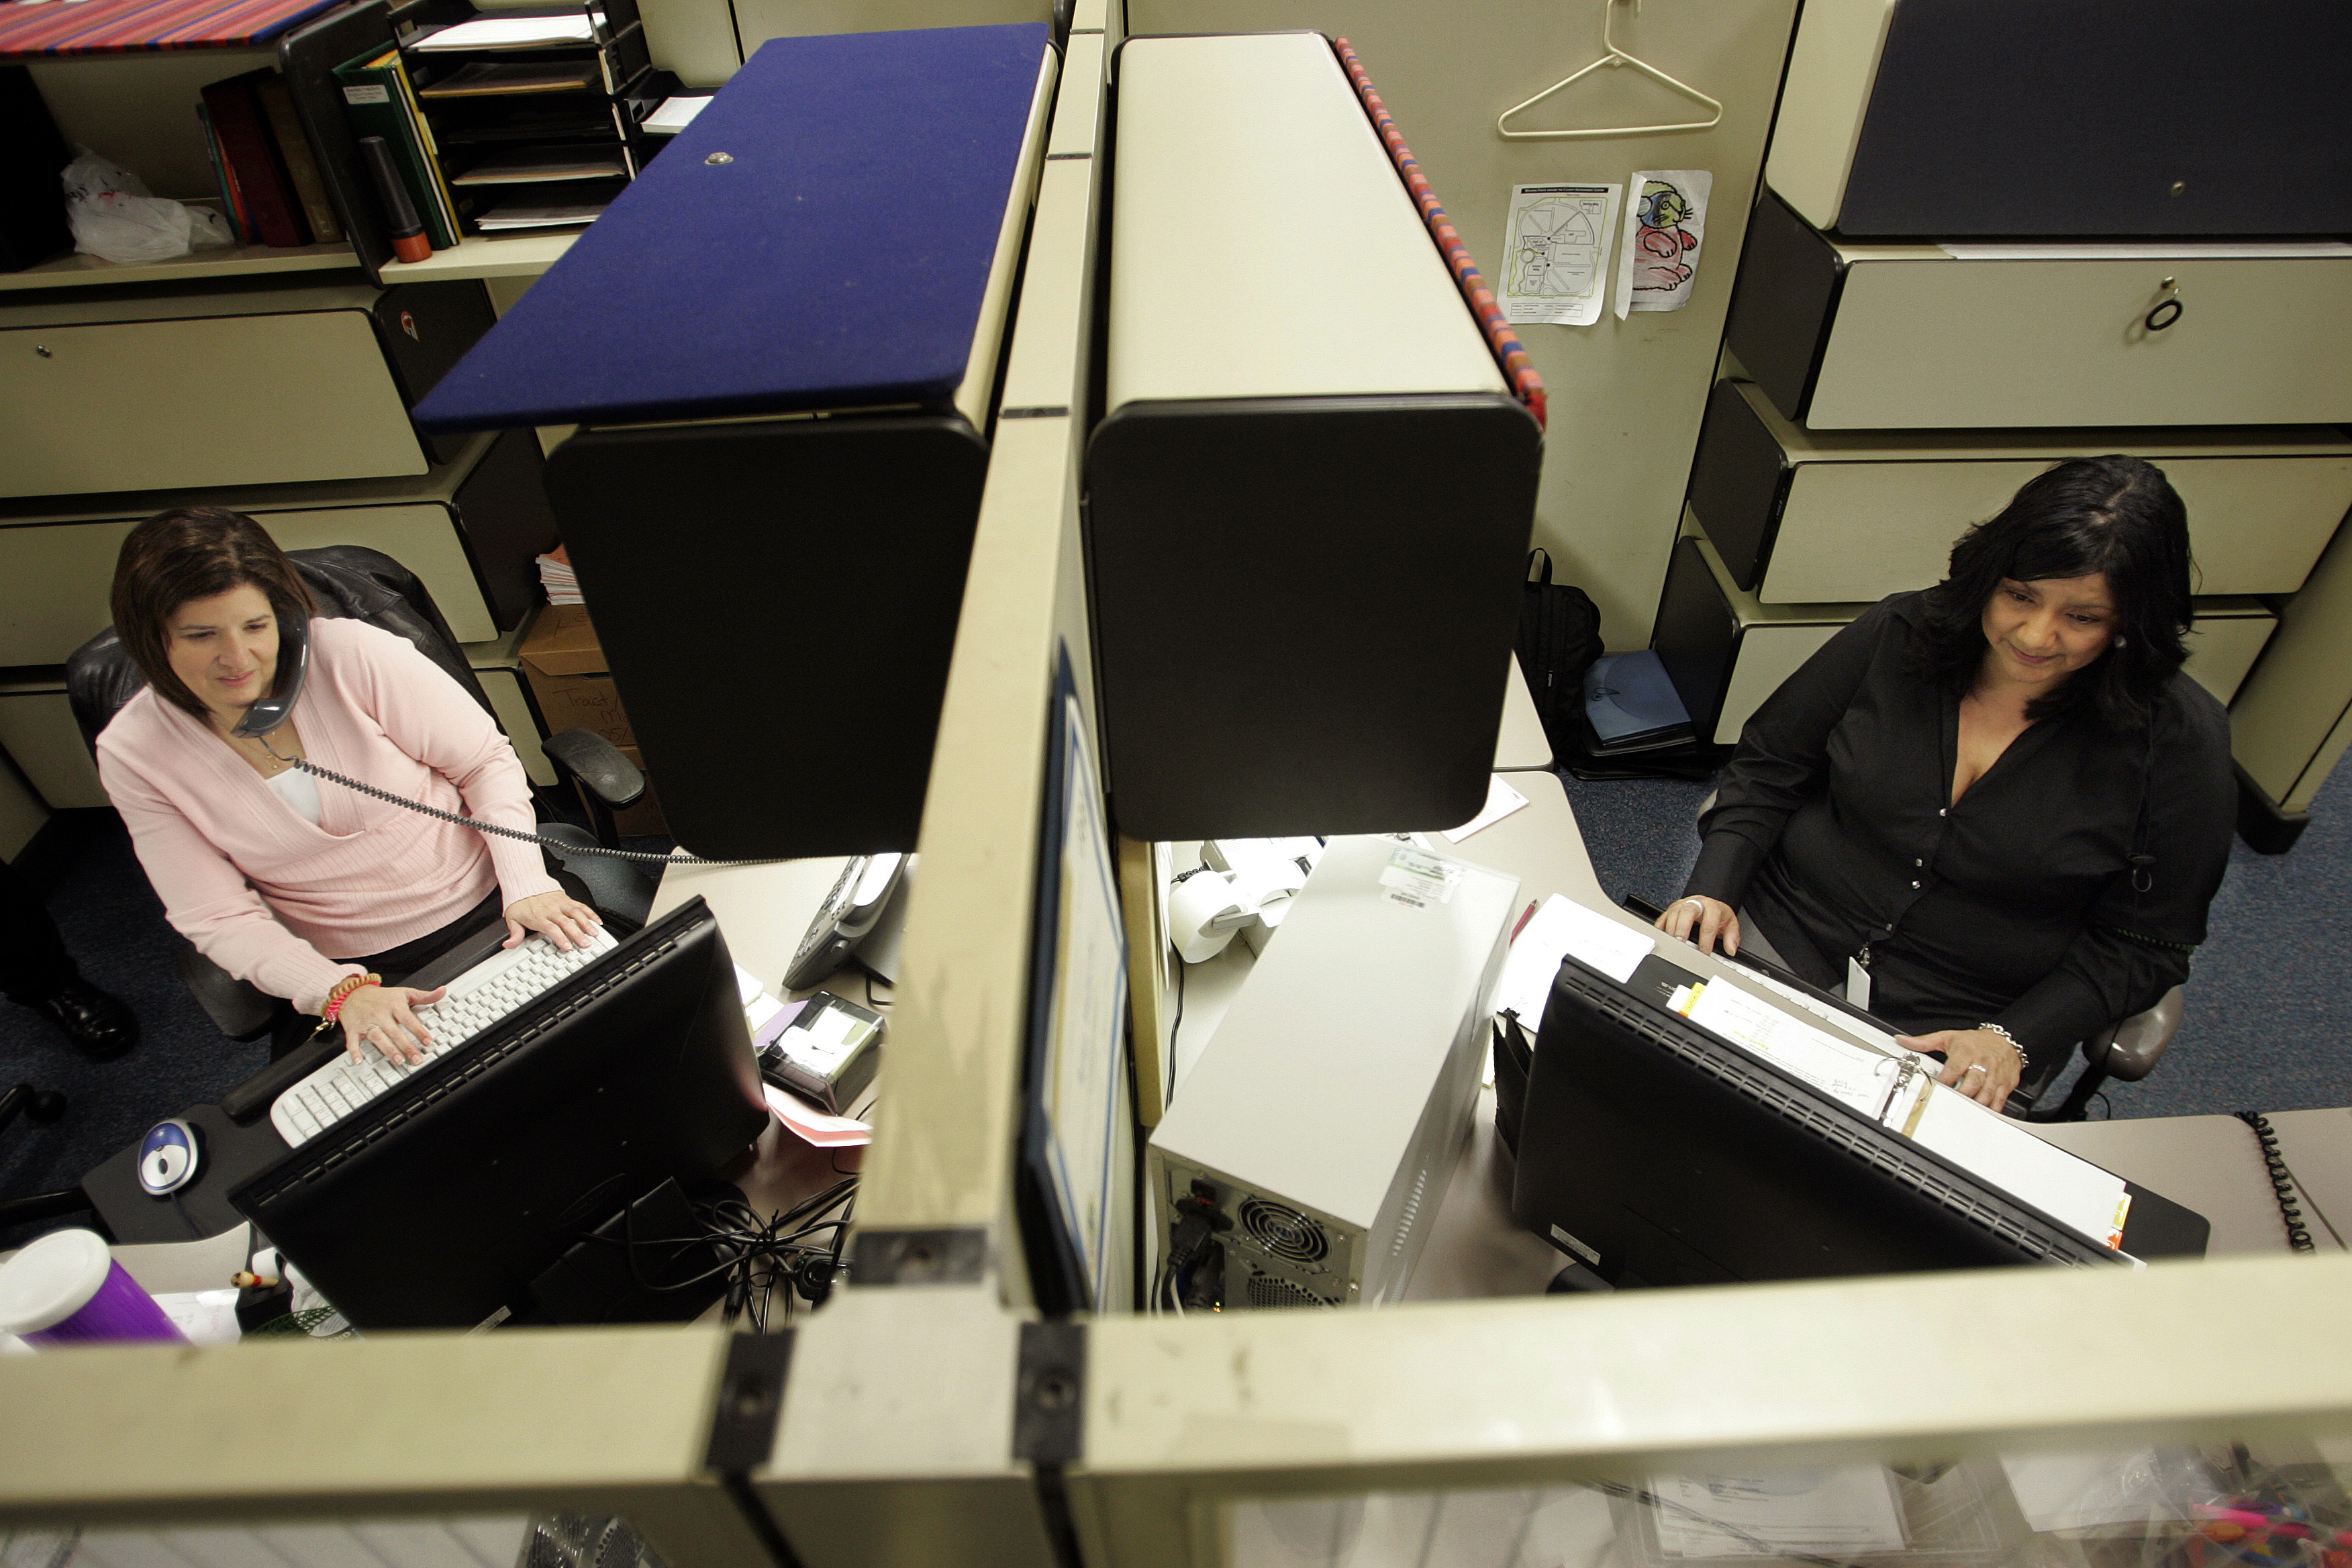 Lisa Valverde, 38, right, a fiscal assistant at the Ventura County treasury tax collector's office